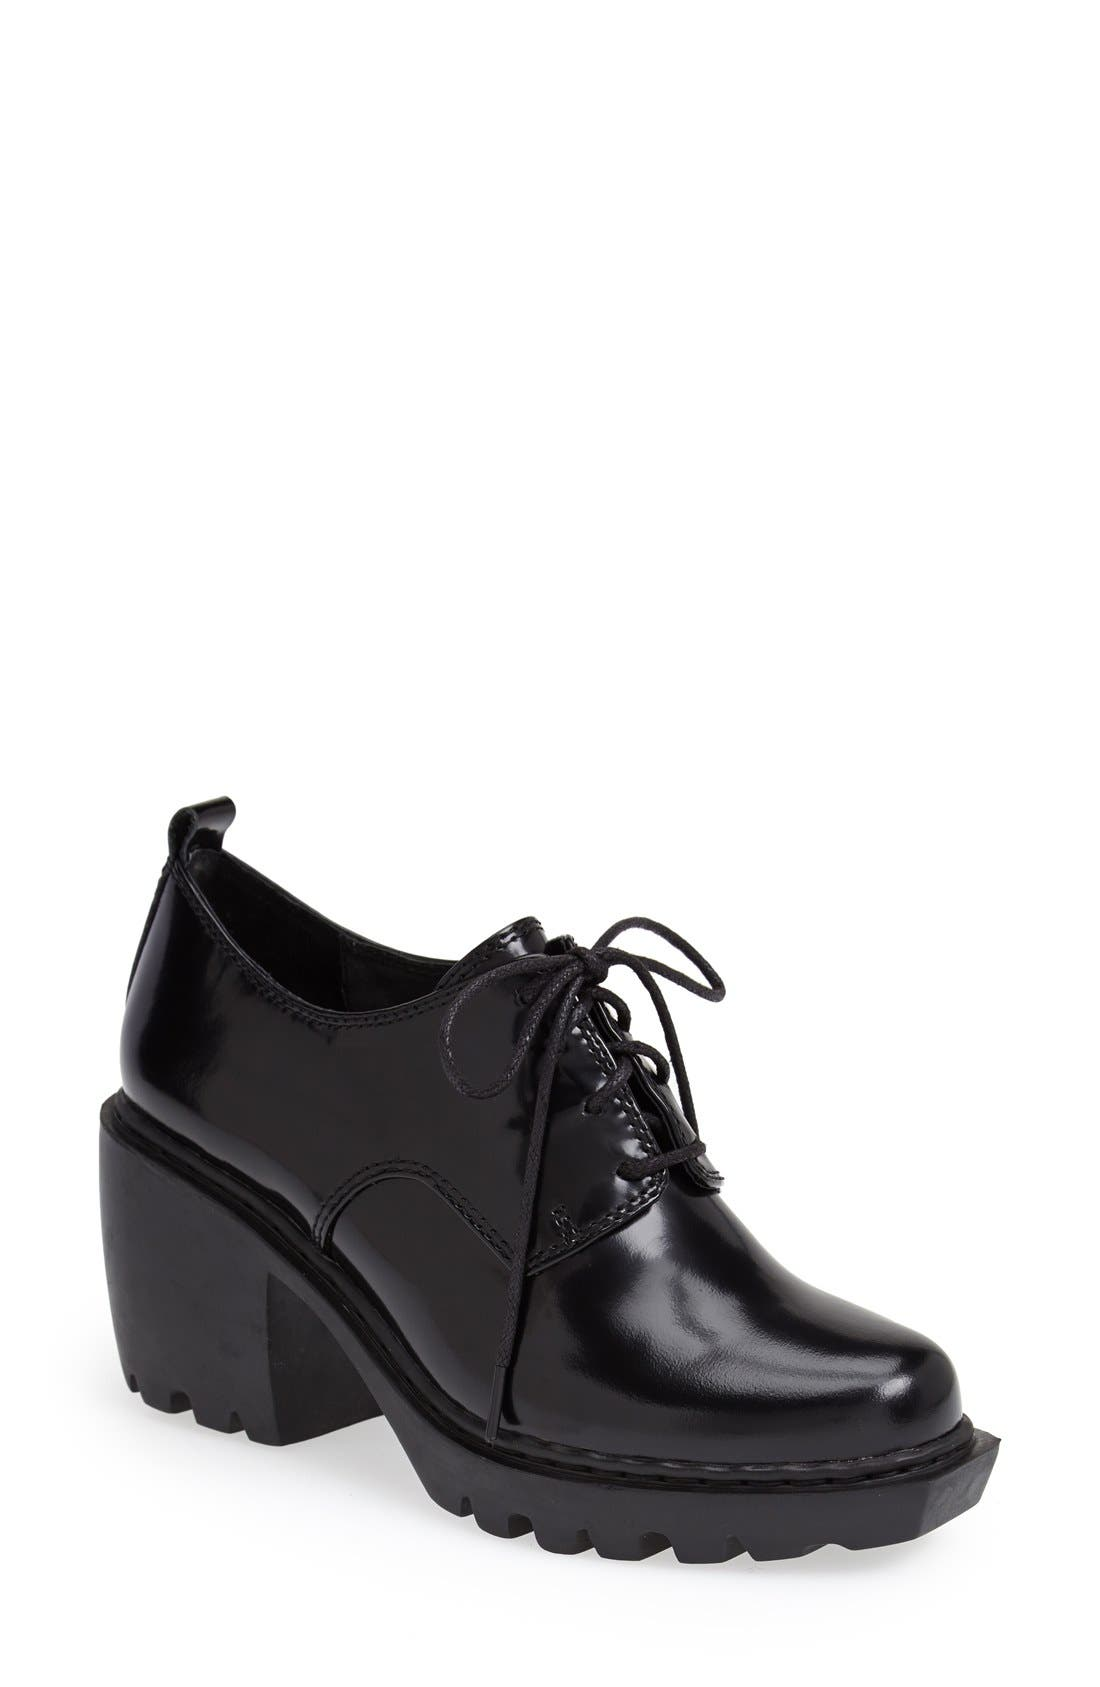 Alternate Image 1 Selected - Opening Ceremony 'Grunge' Oxford Bootie